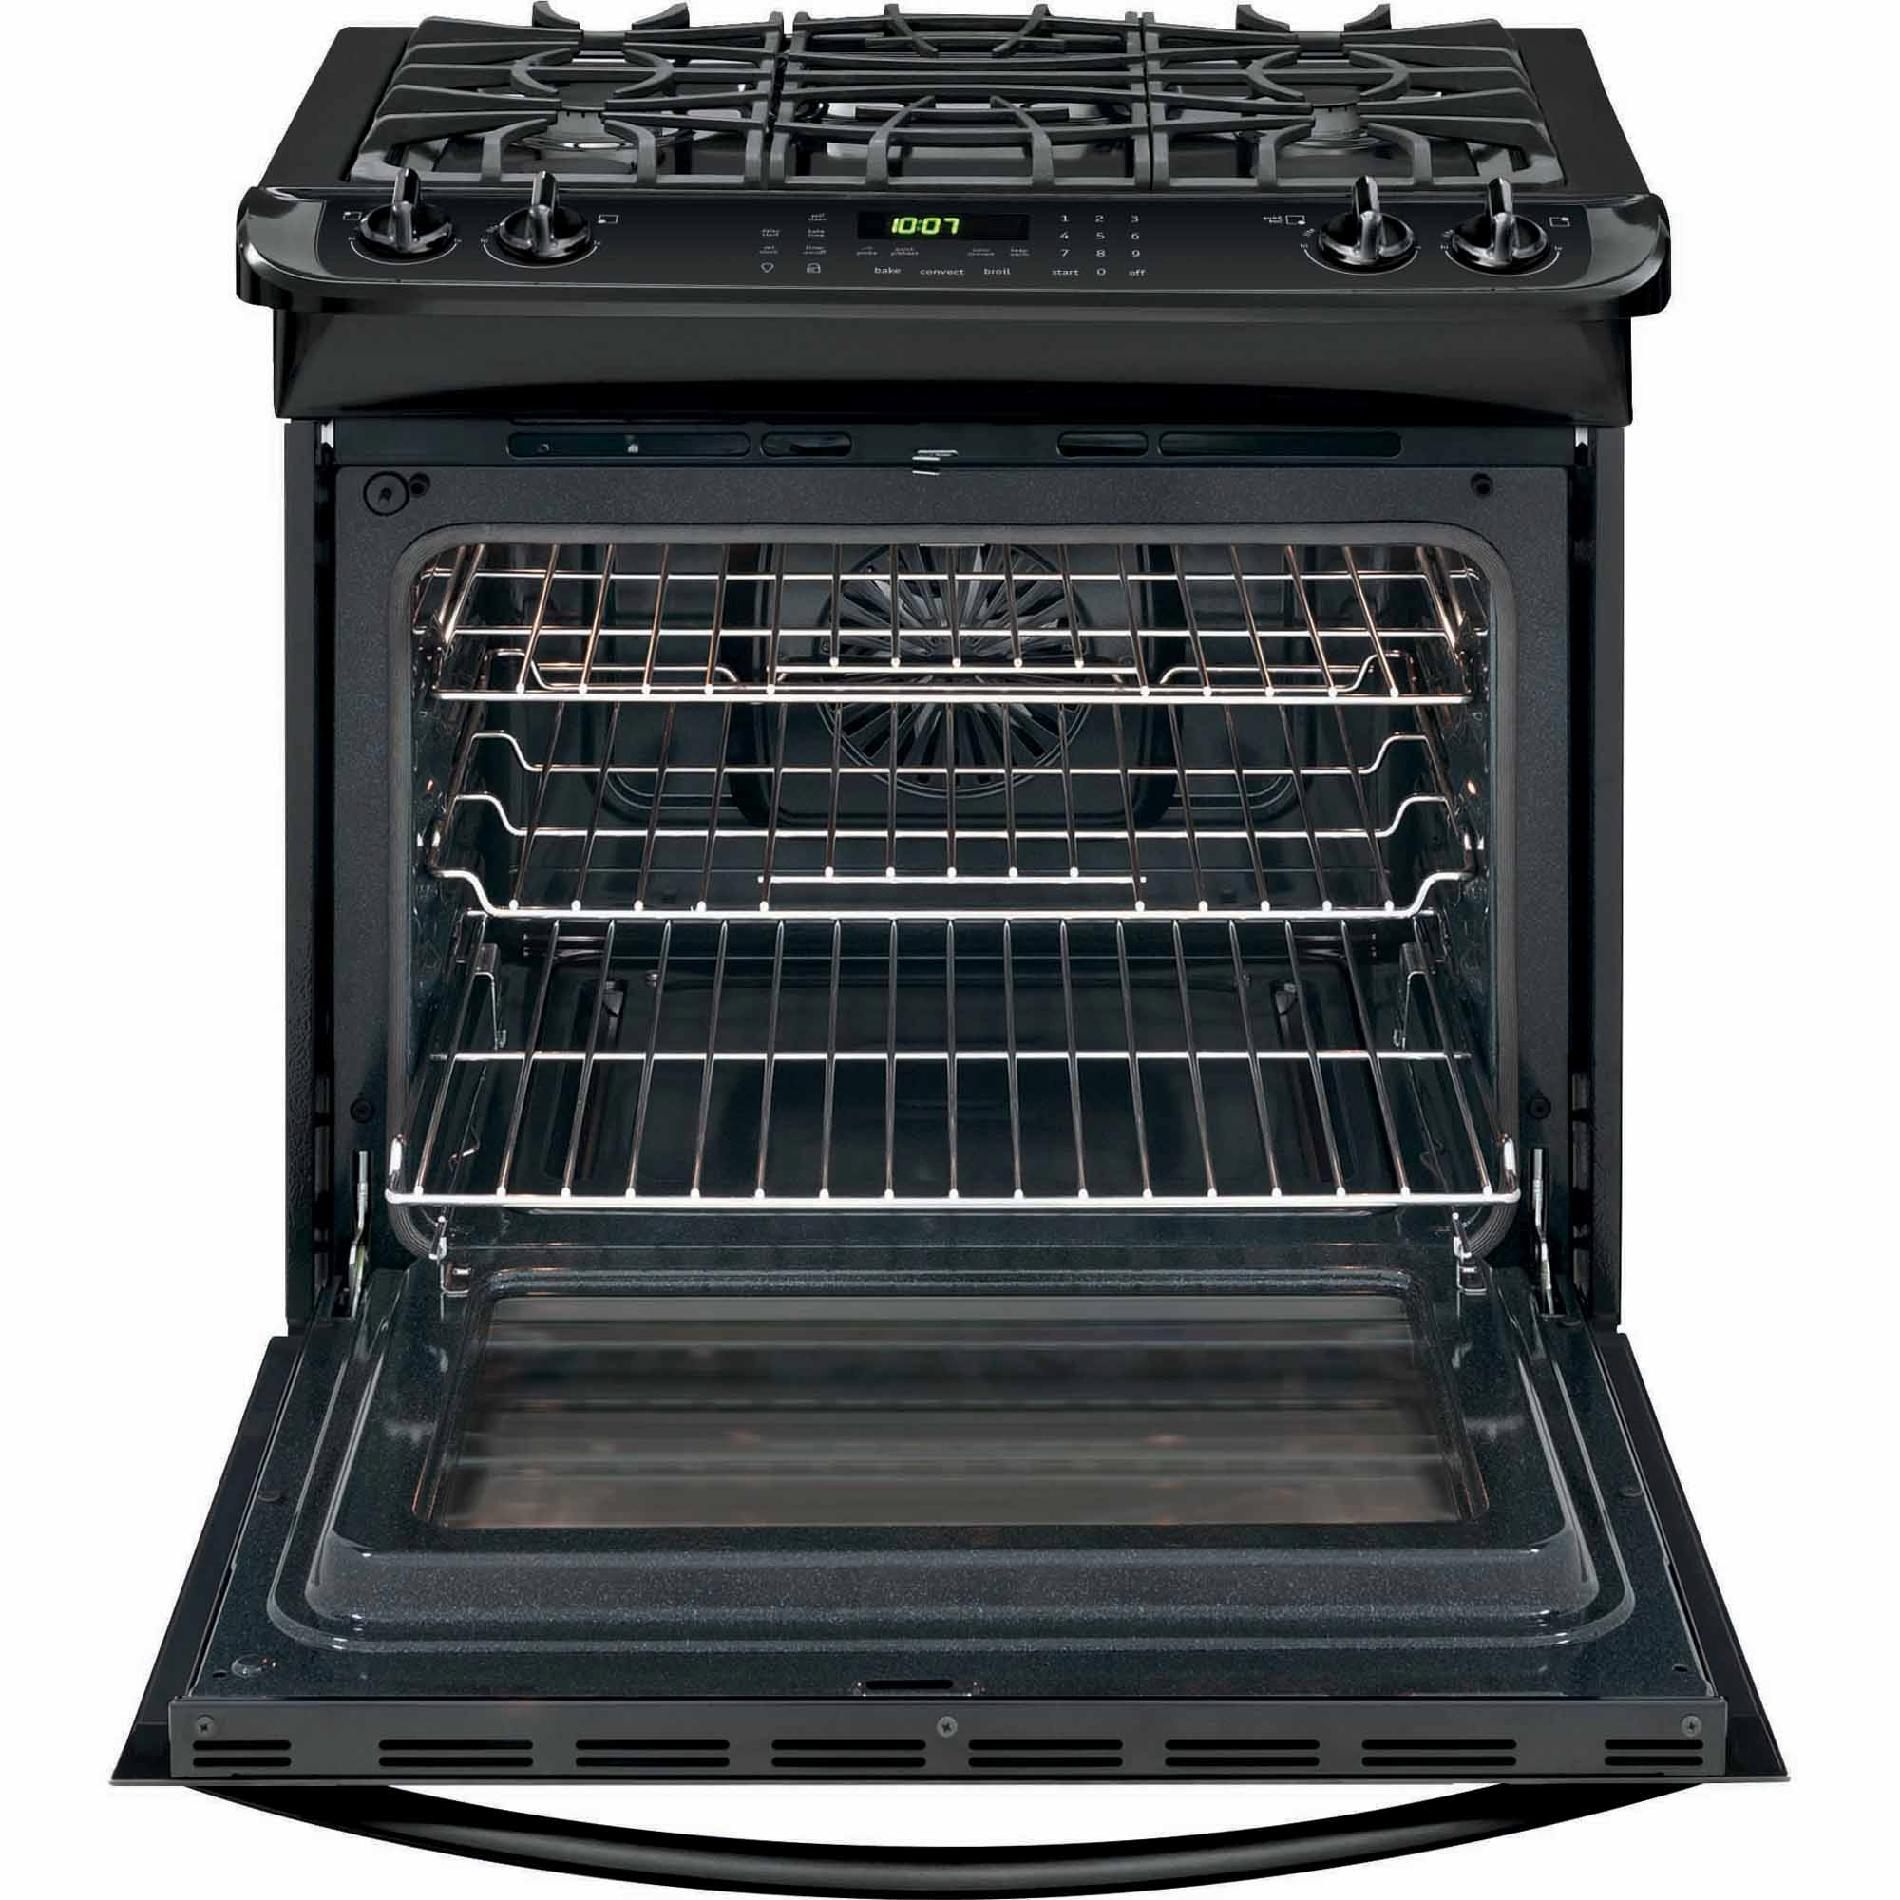 Frigidaire FGGS3065PB Gallery 4.6 cu. ft. Slide-In Gas Range - Black